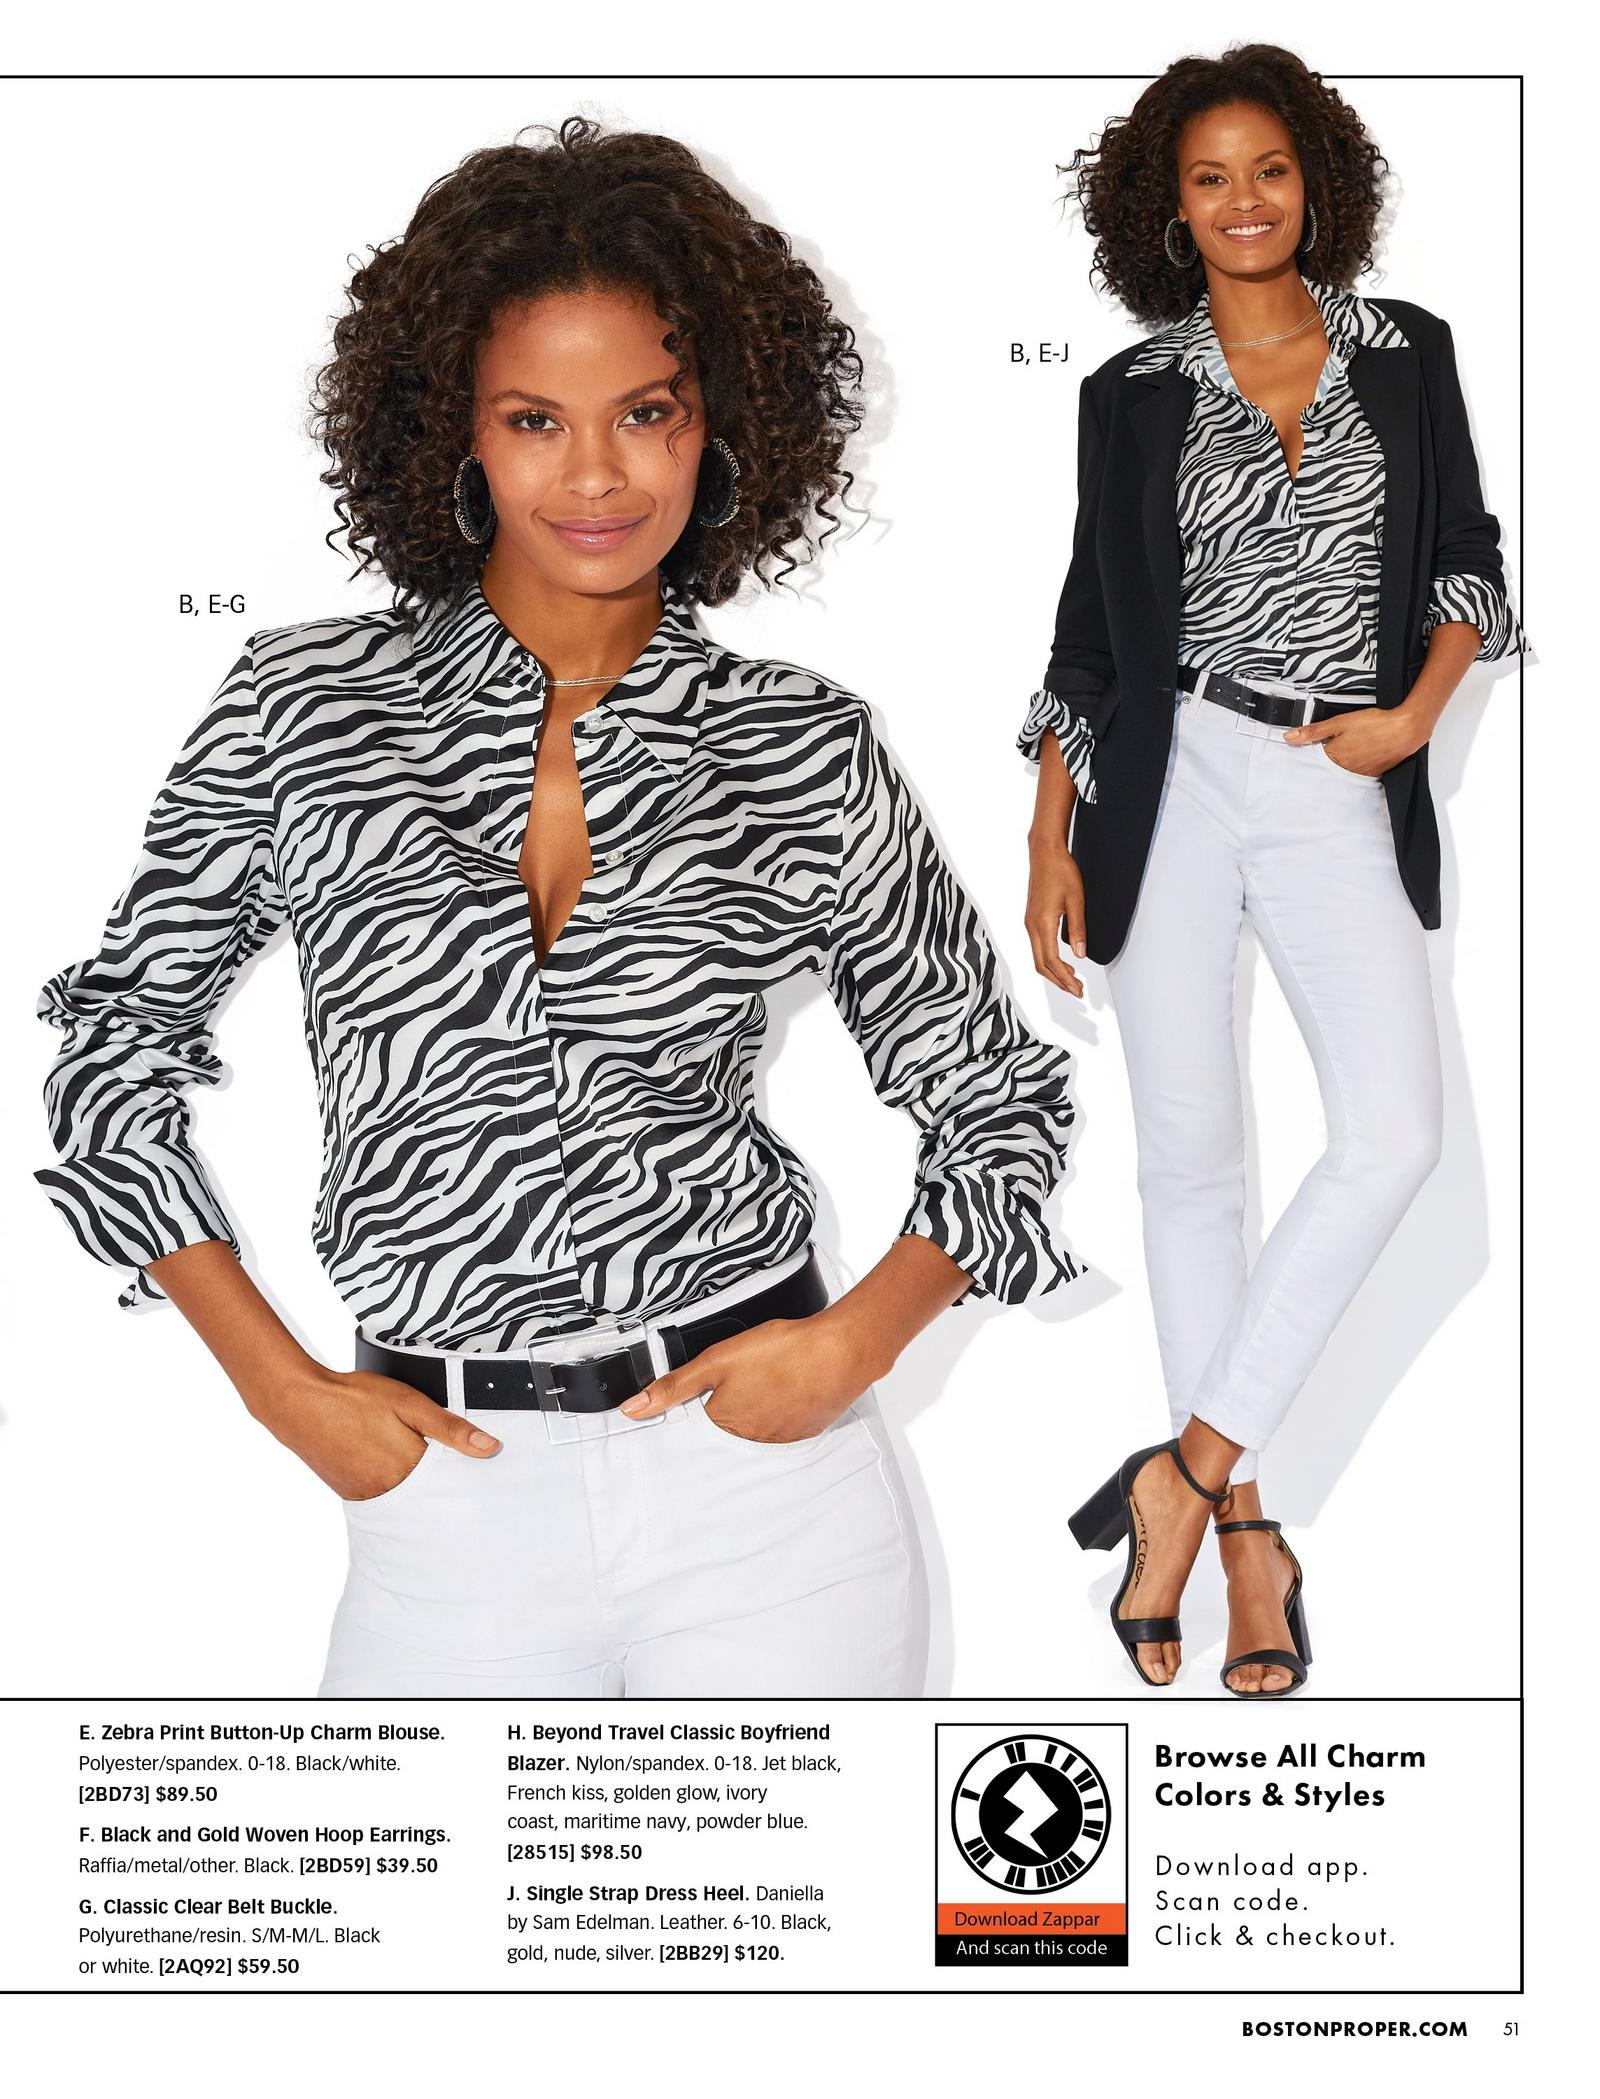 left model wearing a black and white zebra print button down long-sleeve top, black belt, and white jeans. right model wearing a black blazer, black and white zebra print button-down top, black belt, white jeans, and black strappy heels.